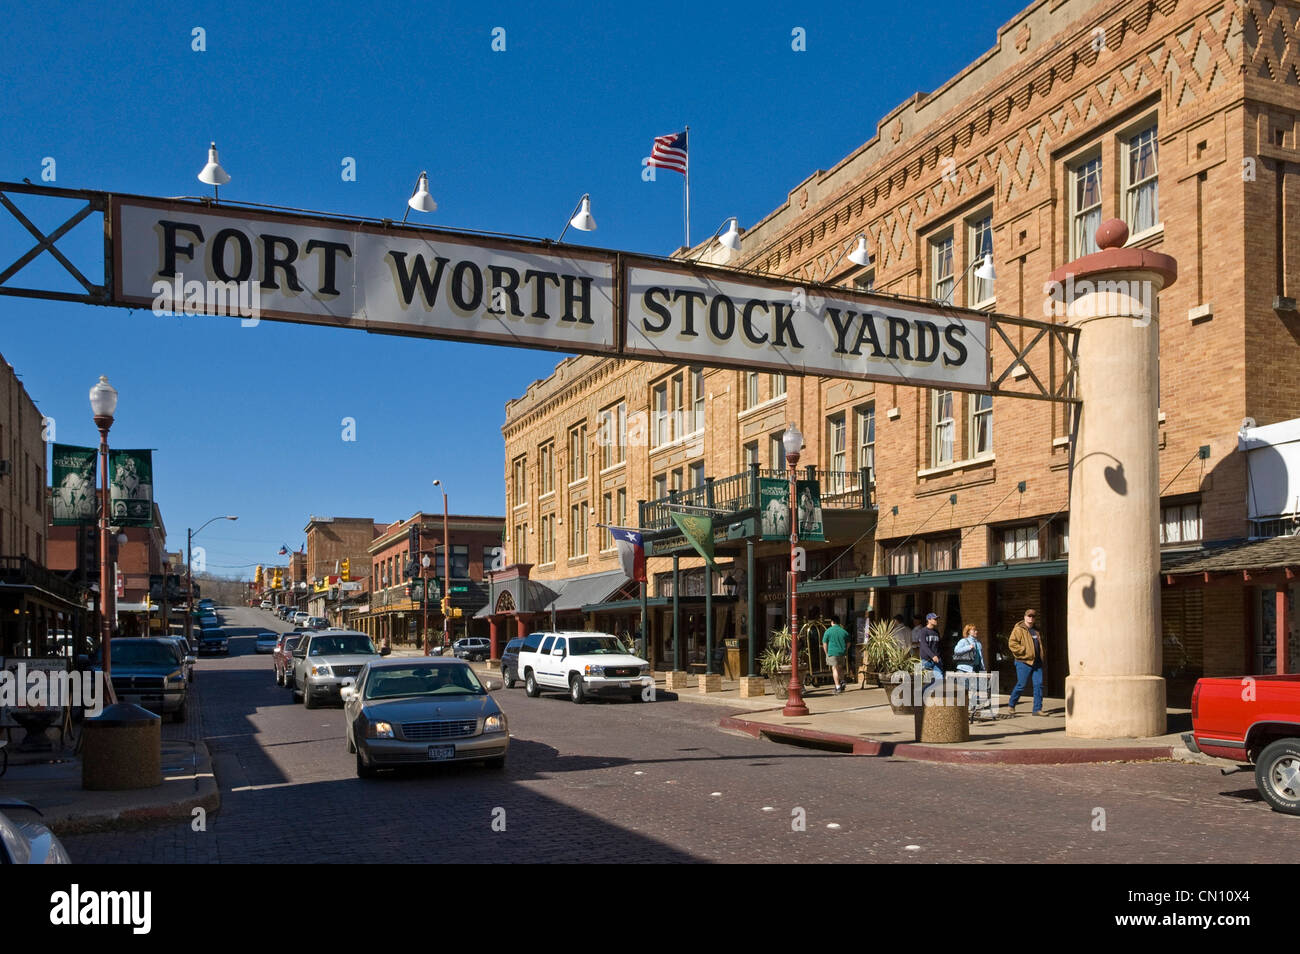 Fort Worth Stockyards Historic District, Fort Worth, Texas, USA - Stock Image